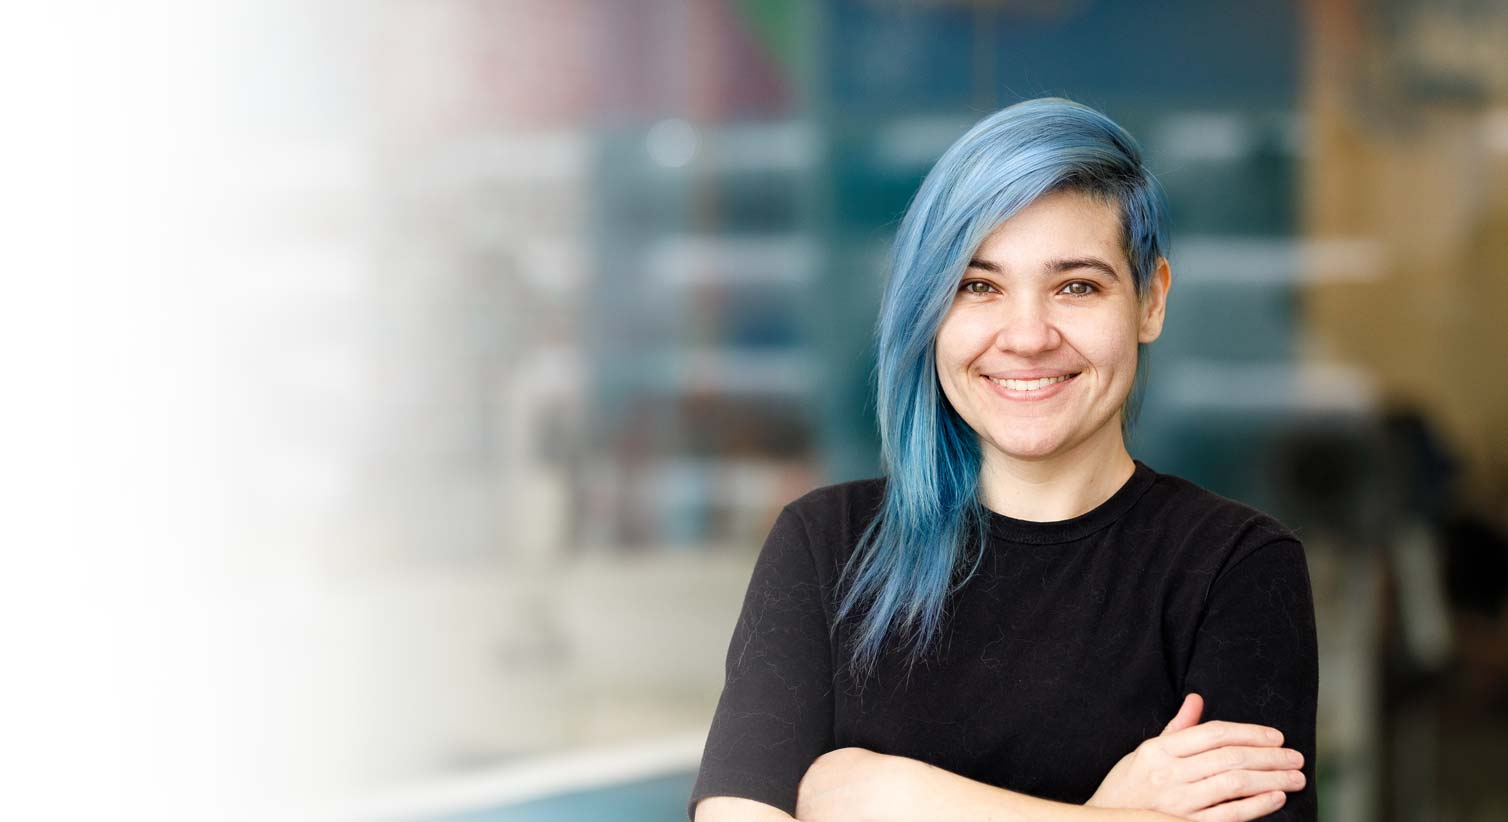 Young woman with blue hair smiling